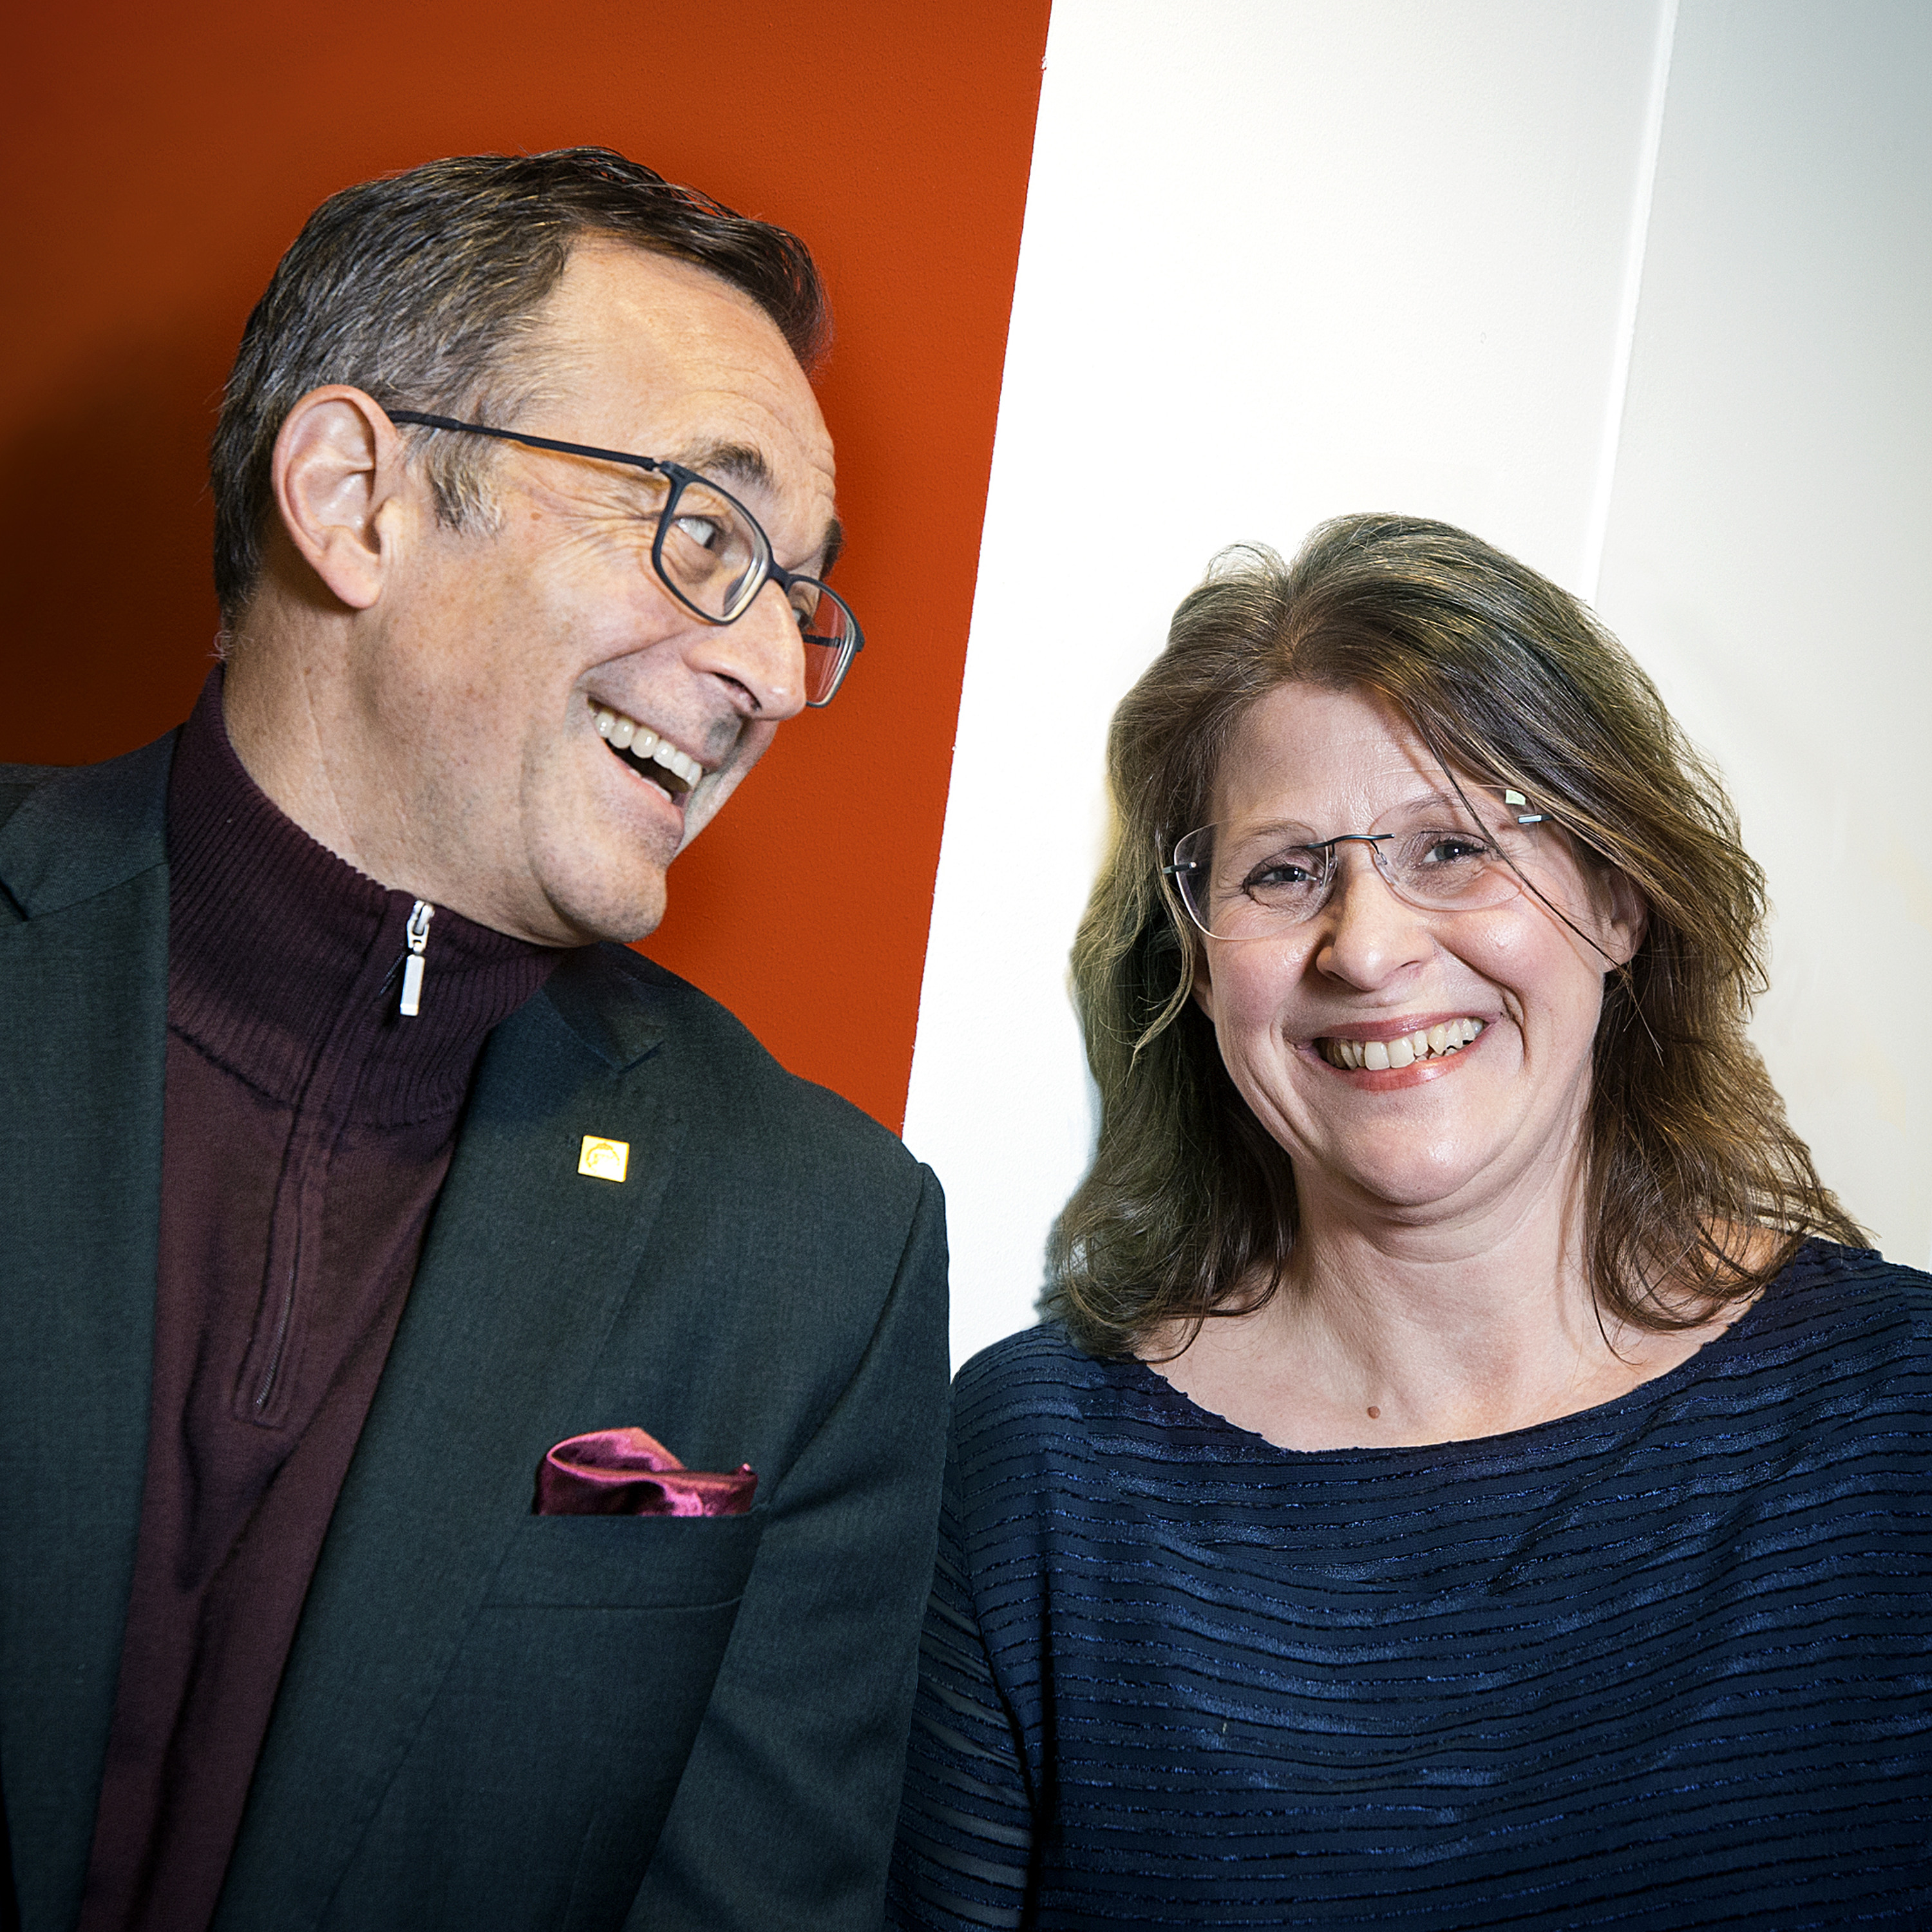 24 A brighter program for innovation:  Donnie Lygonis and Lisa Ericsson